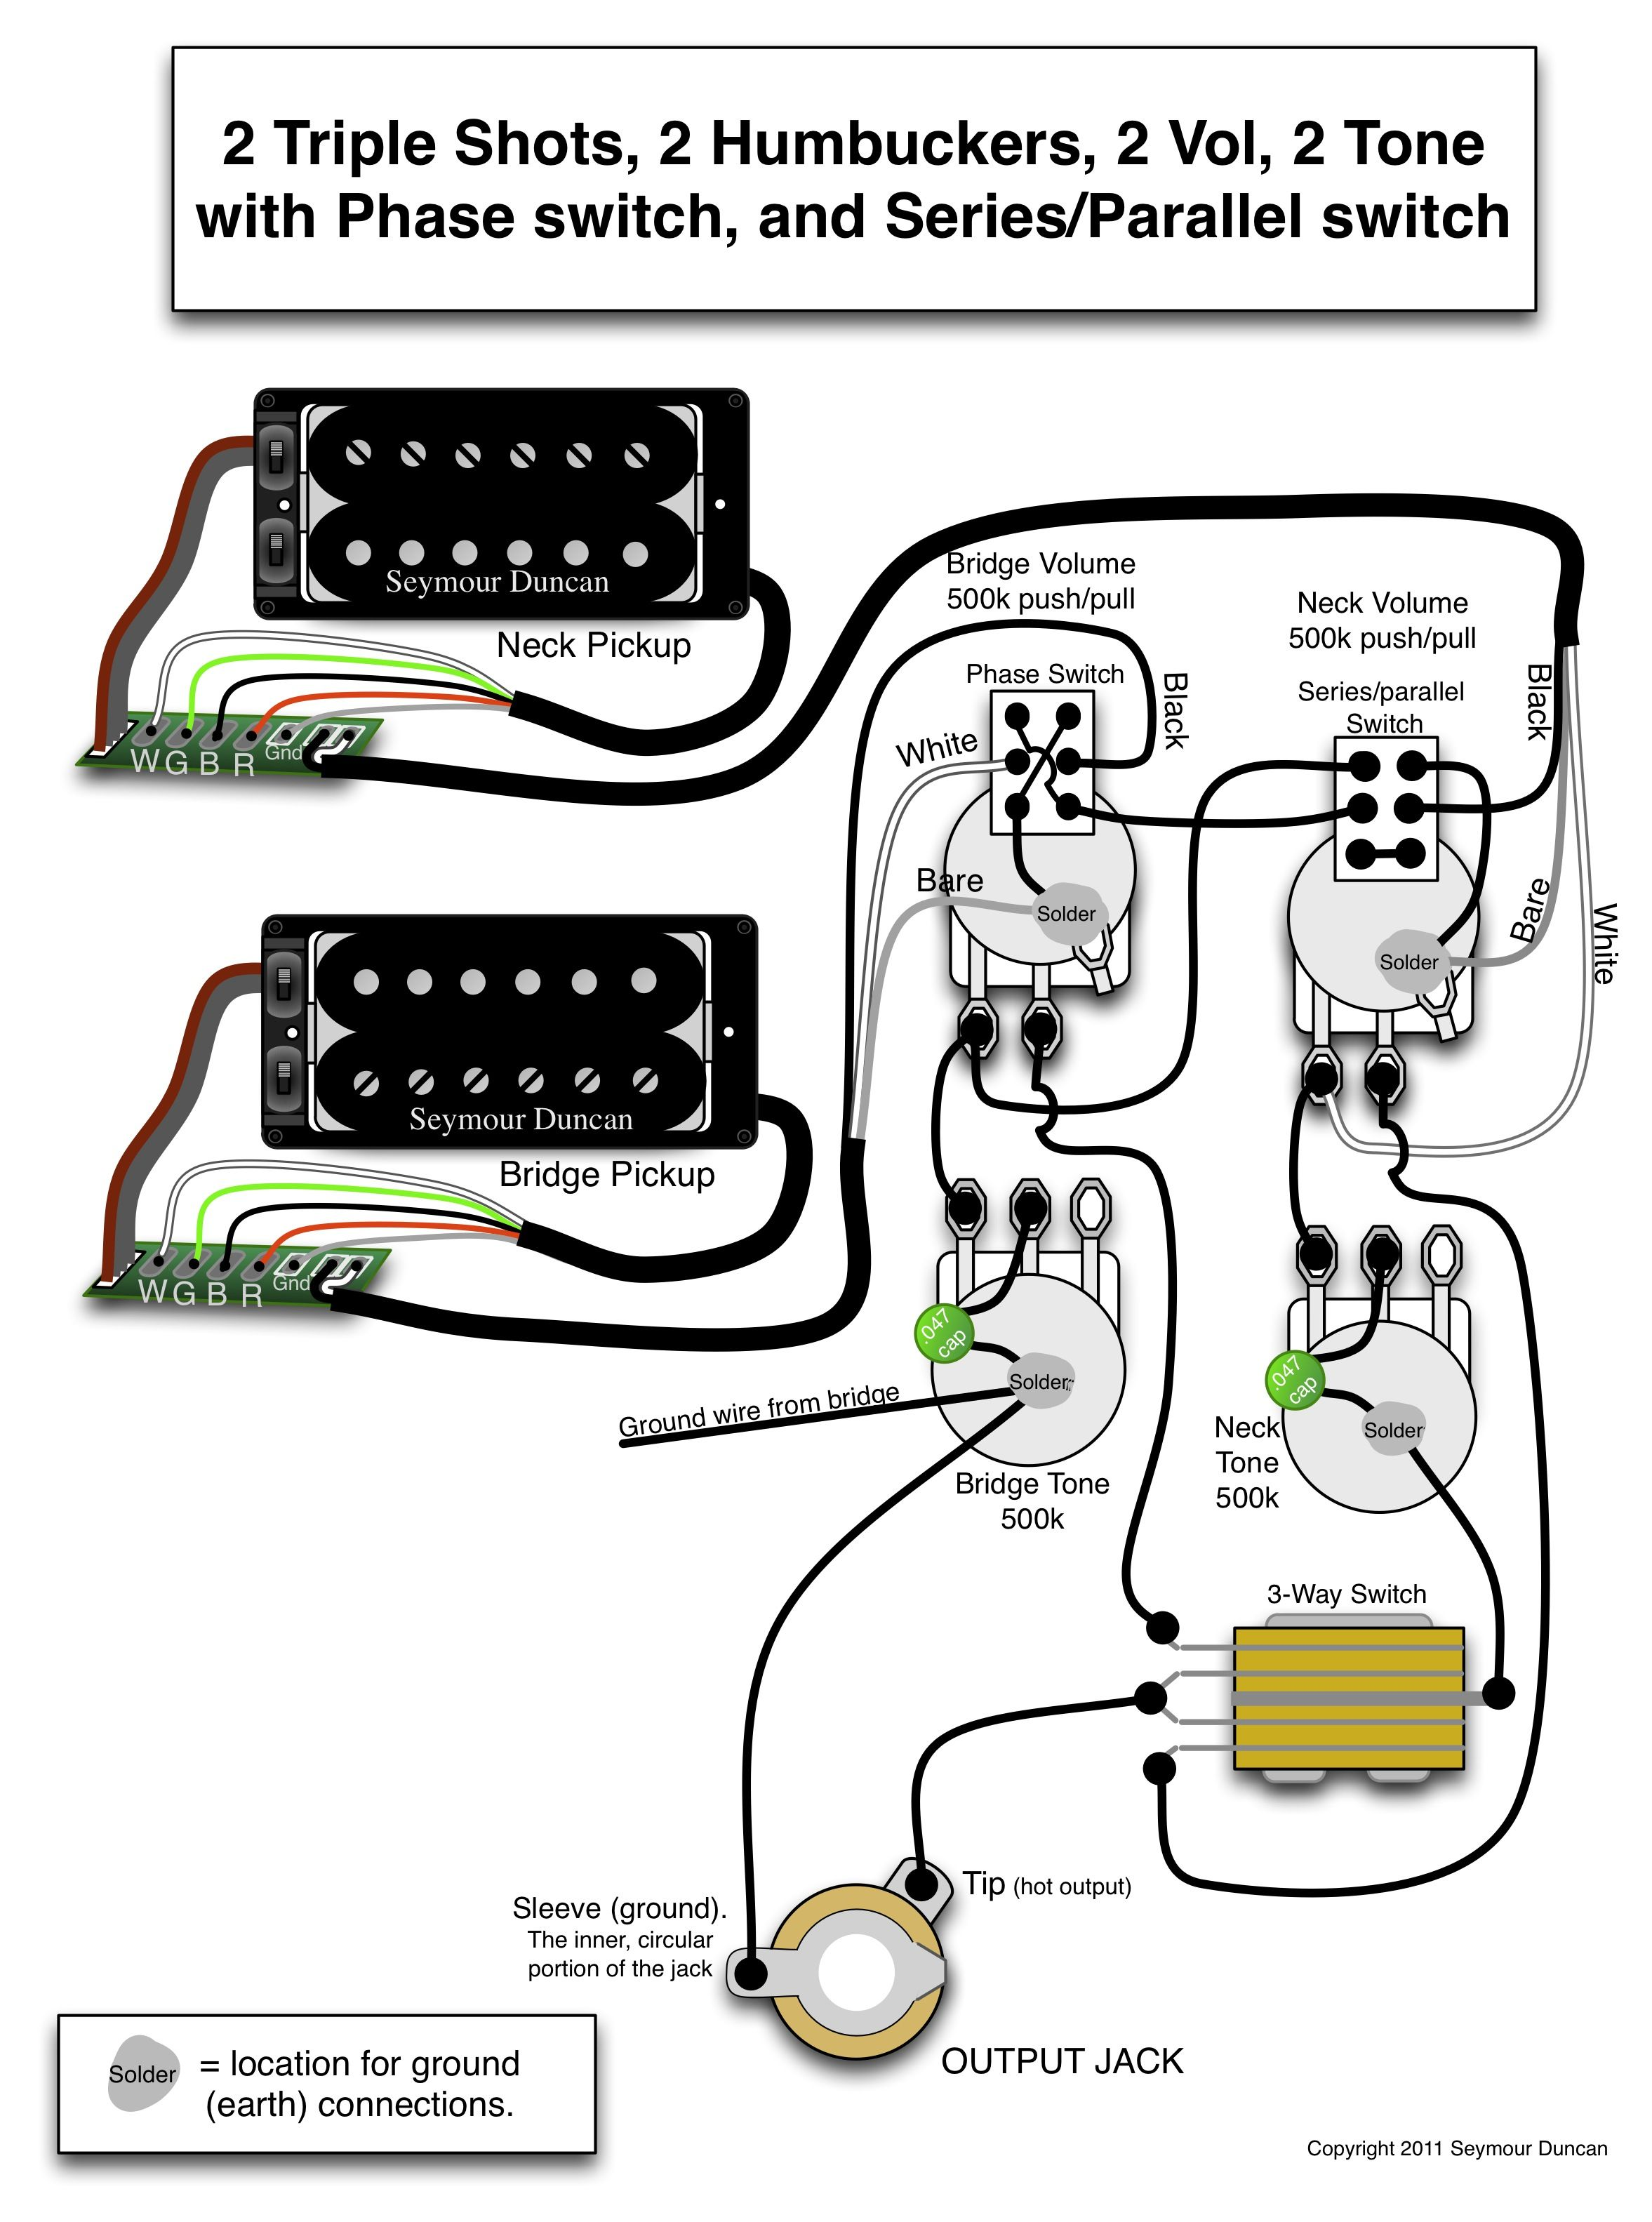 seymour duncan wiring diagram 2 triple shots 2 humbuckers 2 vol rh pinterest com  seymour duncan hss strat wiring diagram